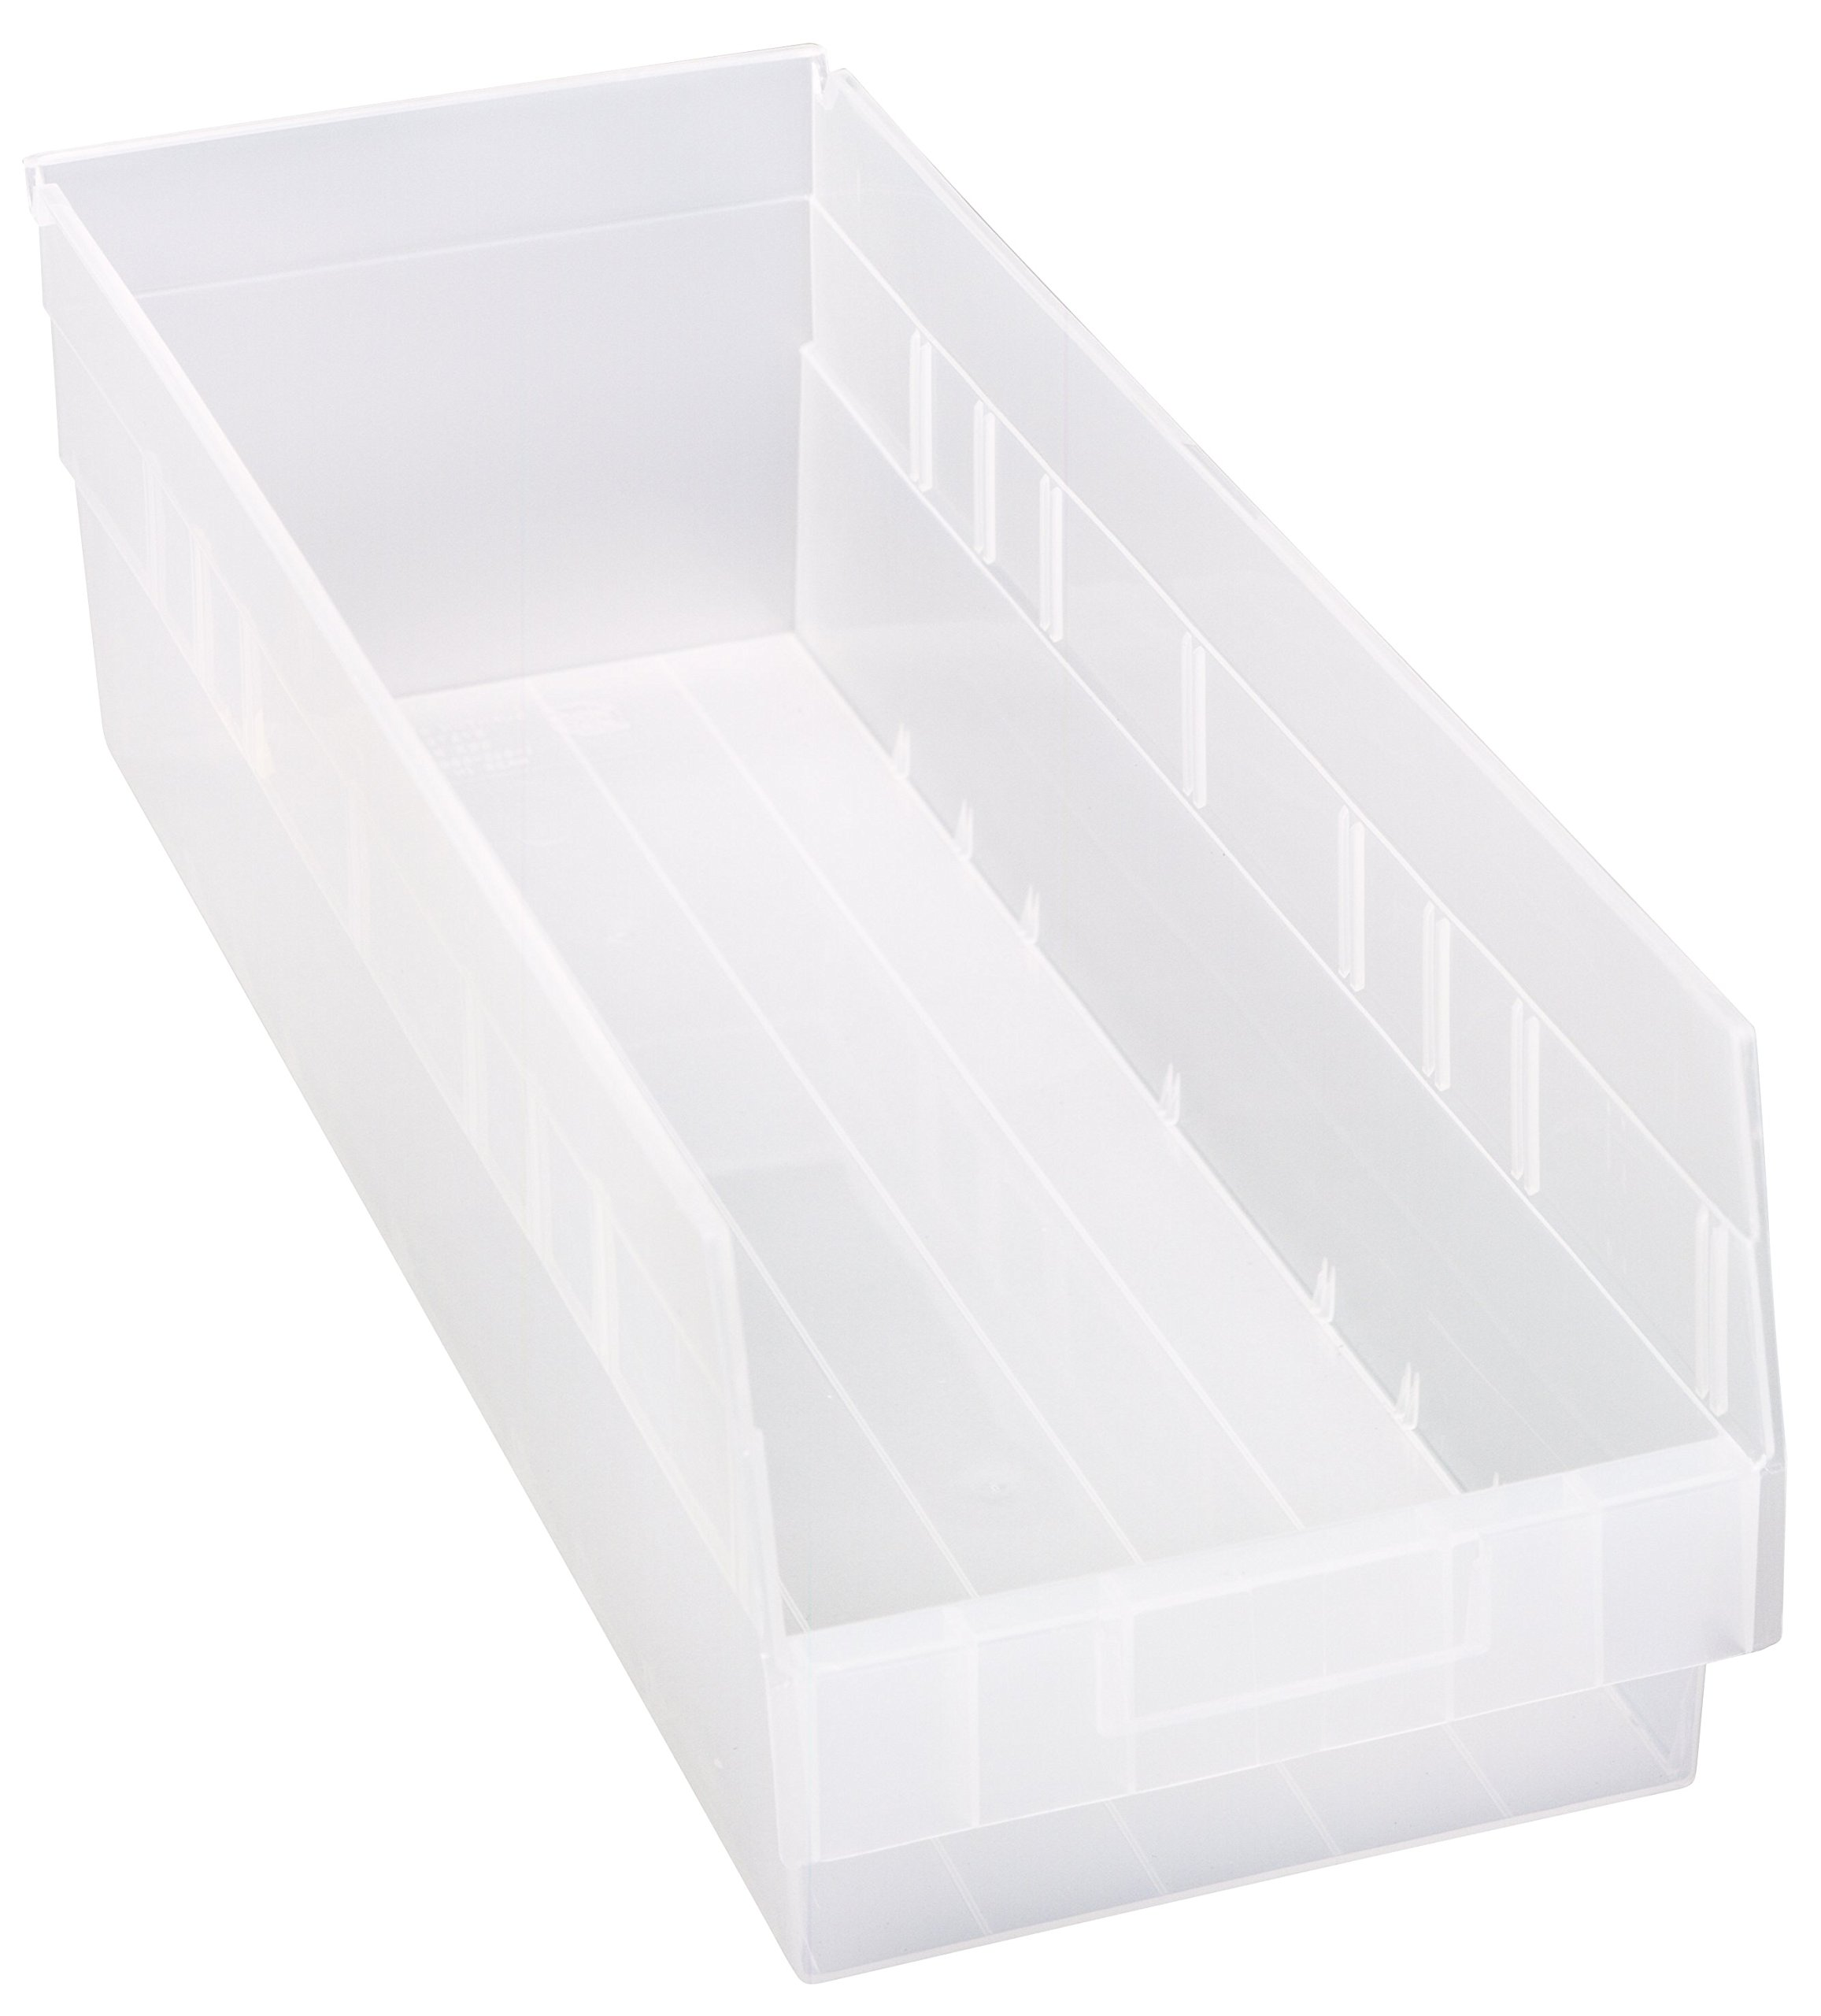 Quantum QSB214CL Store More Shelf Bin, 23-5/8'' Length x 8-3/8'' Width x 6'' Height, Clear, Pack of 6 by Quantum